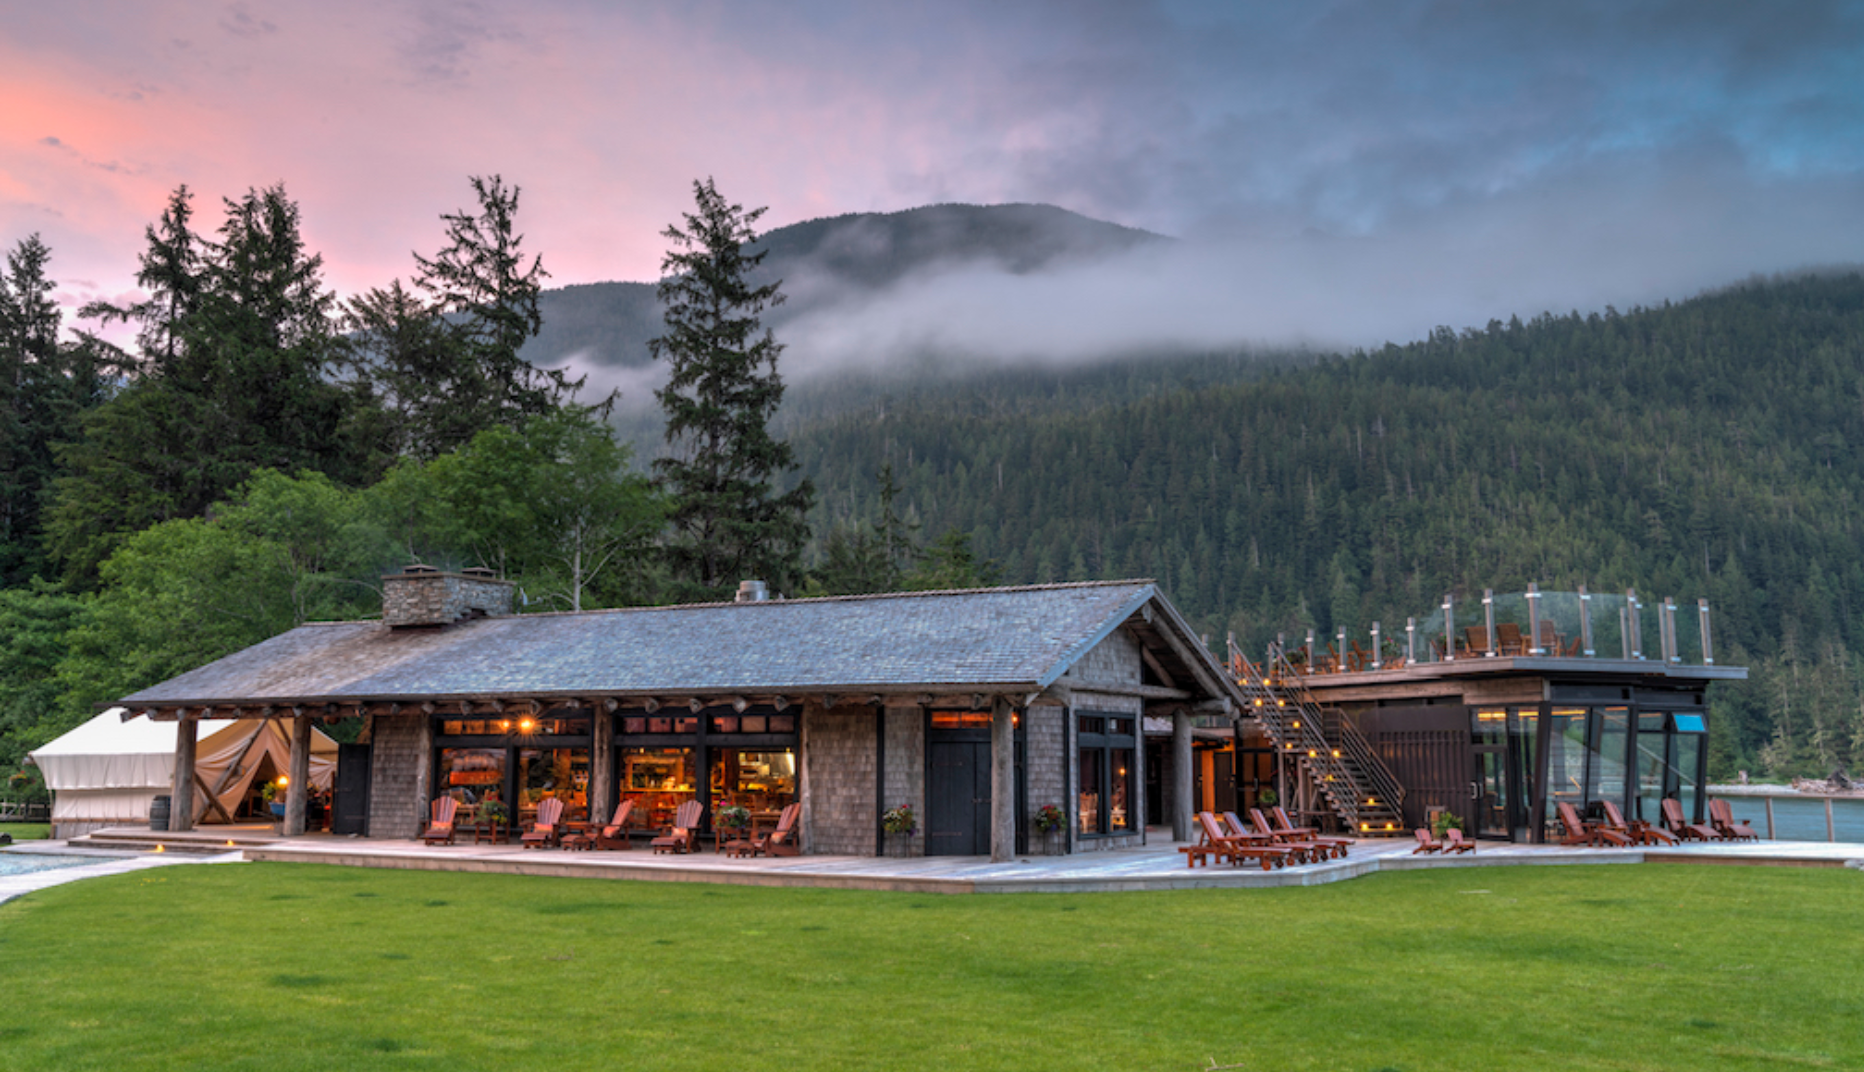 Remote BC wilderness luxury lodge reopening after $2M makeover